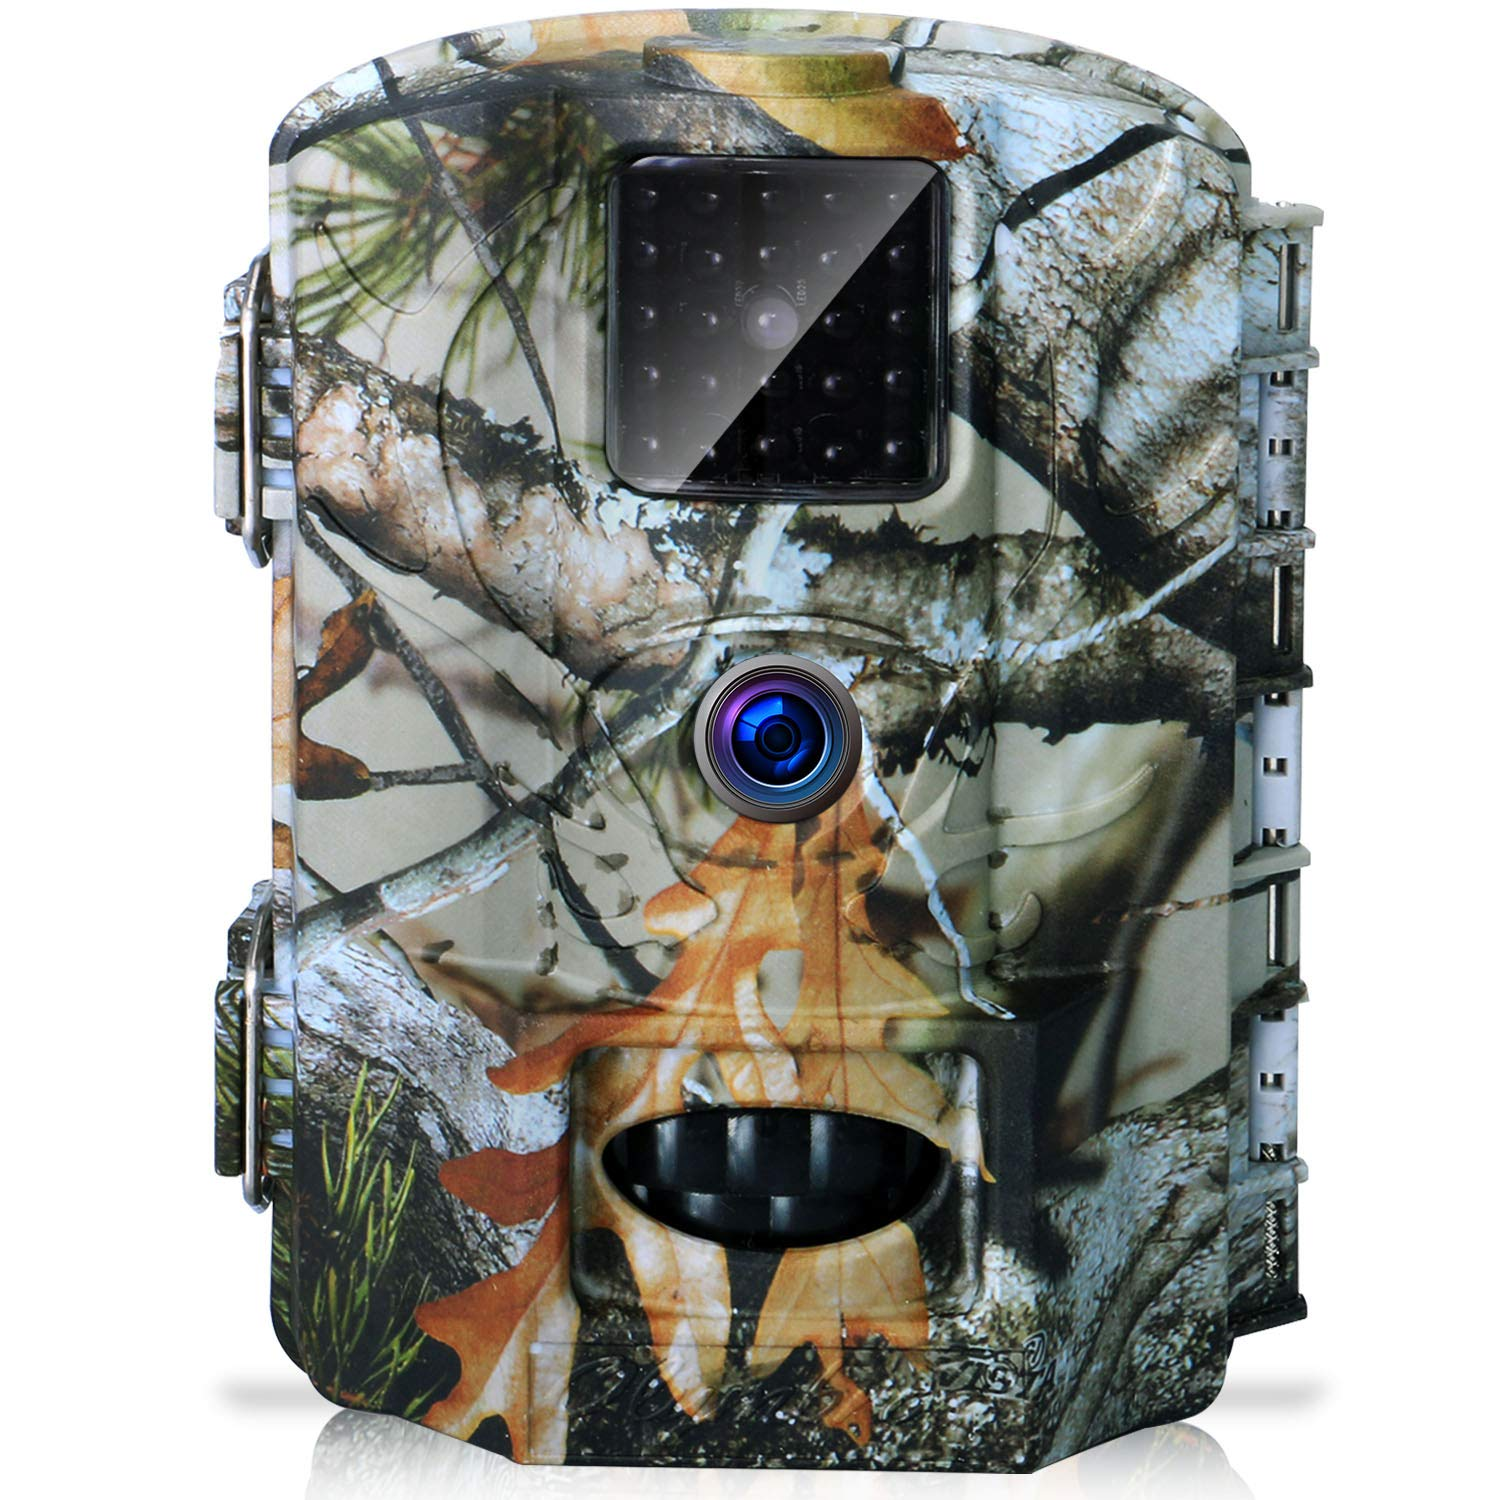 9f1565d6baf Olymbros Wildife Trail Camera Trap 16MP 1080P Game Cam with Infrared Night  Vision up to 82ft